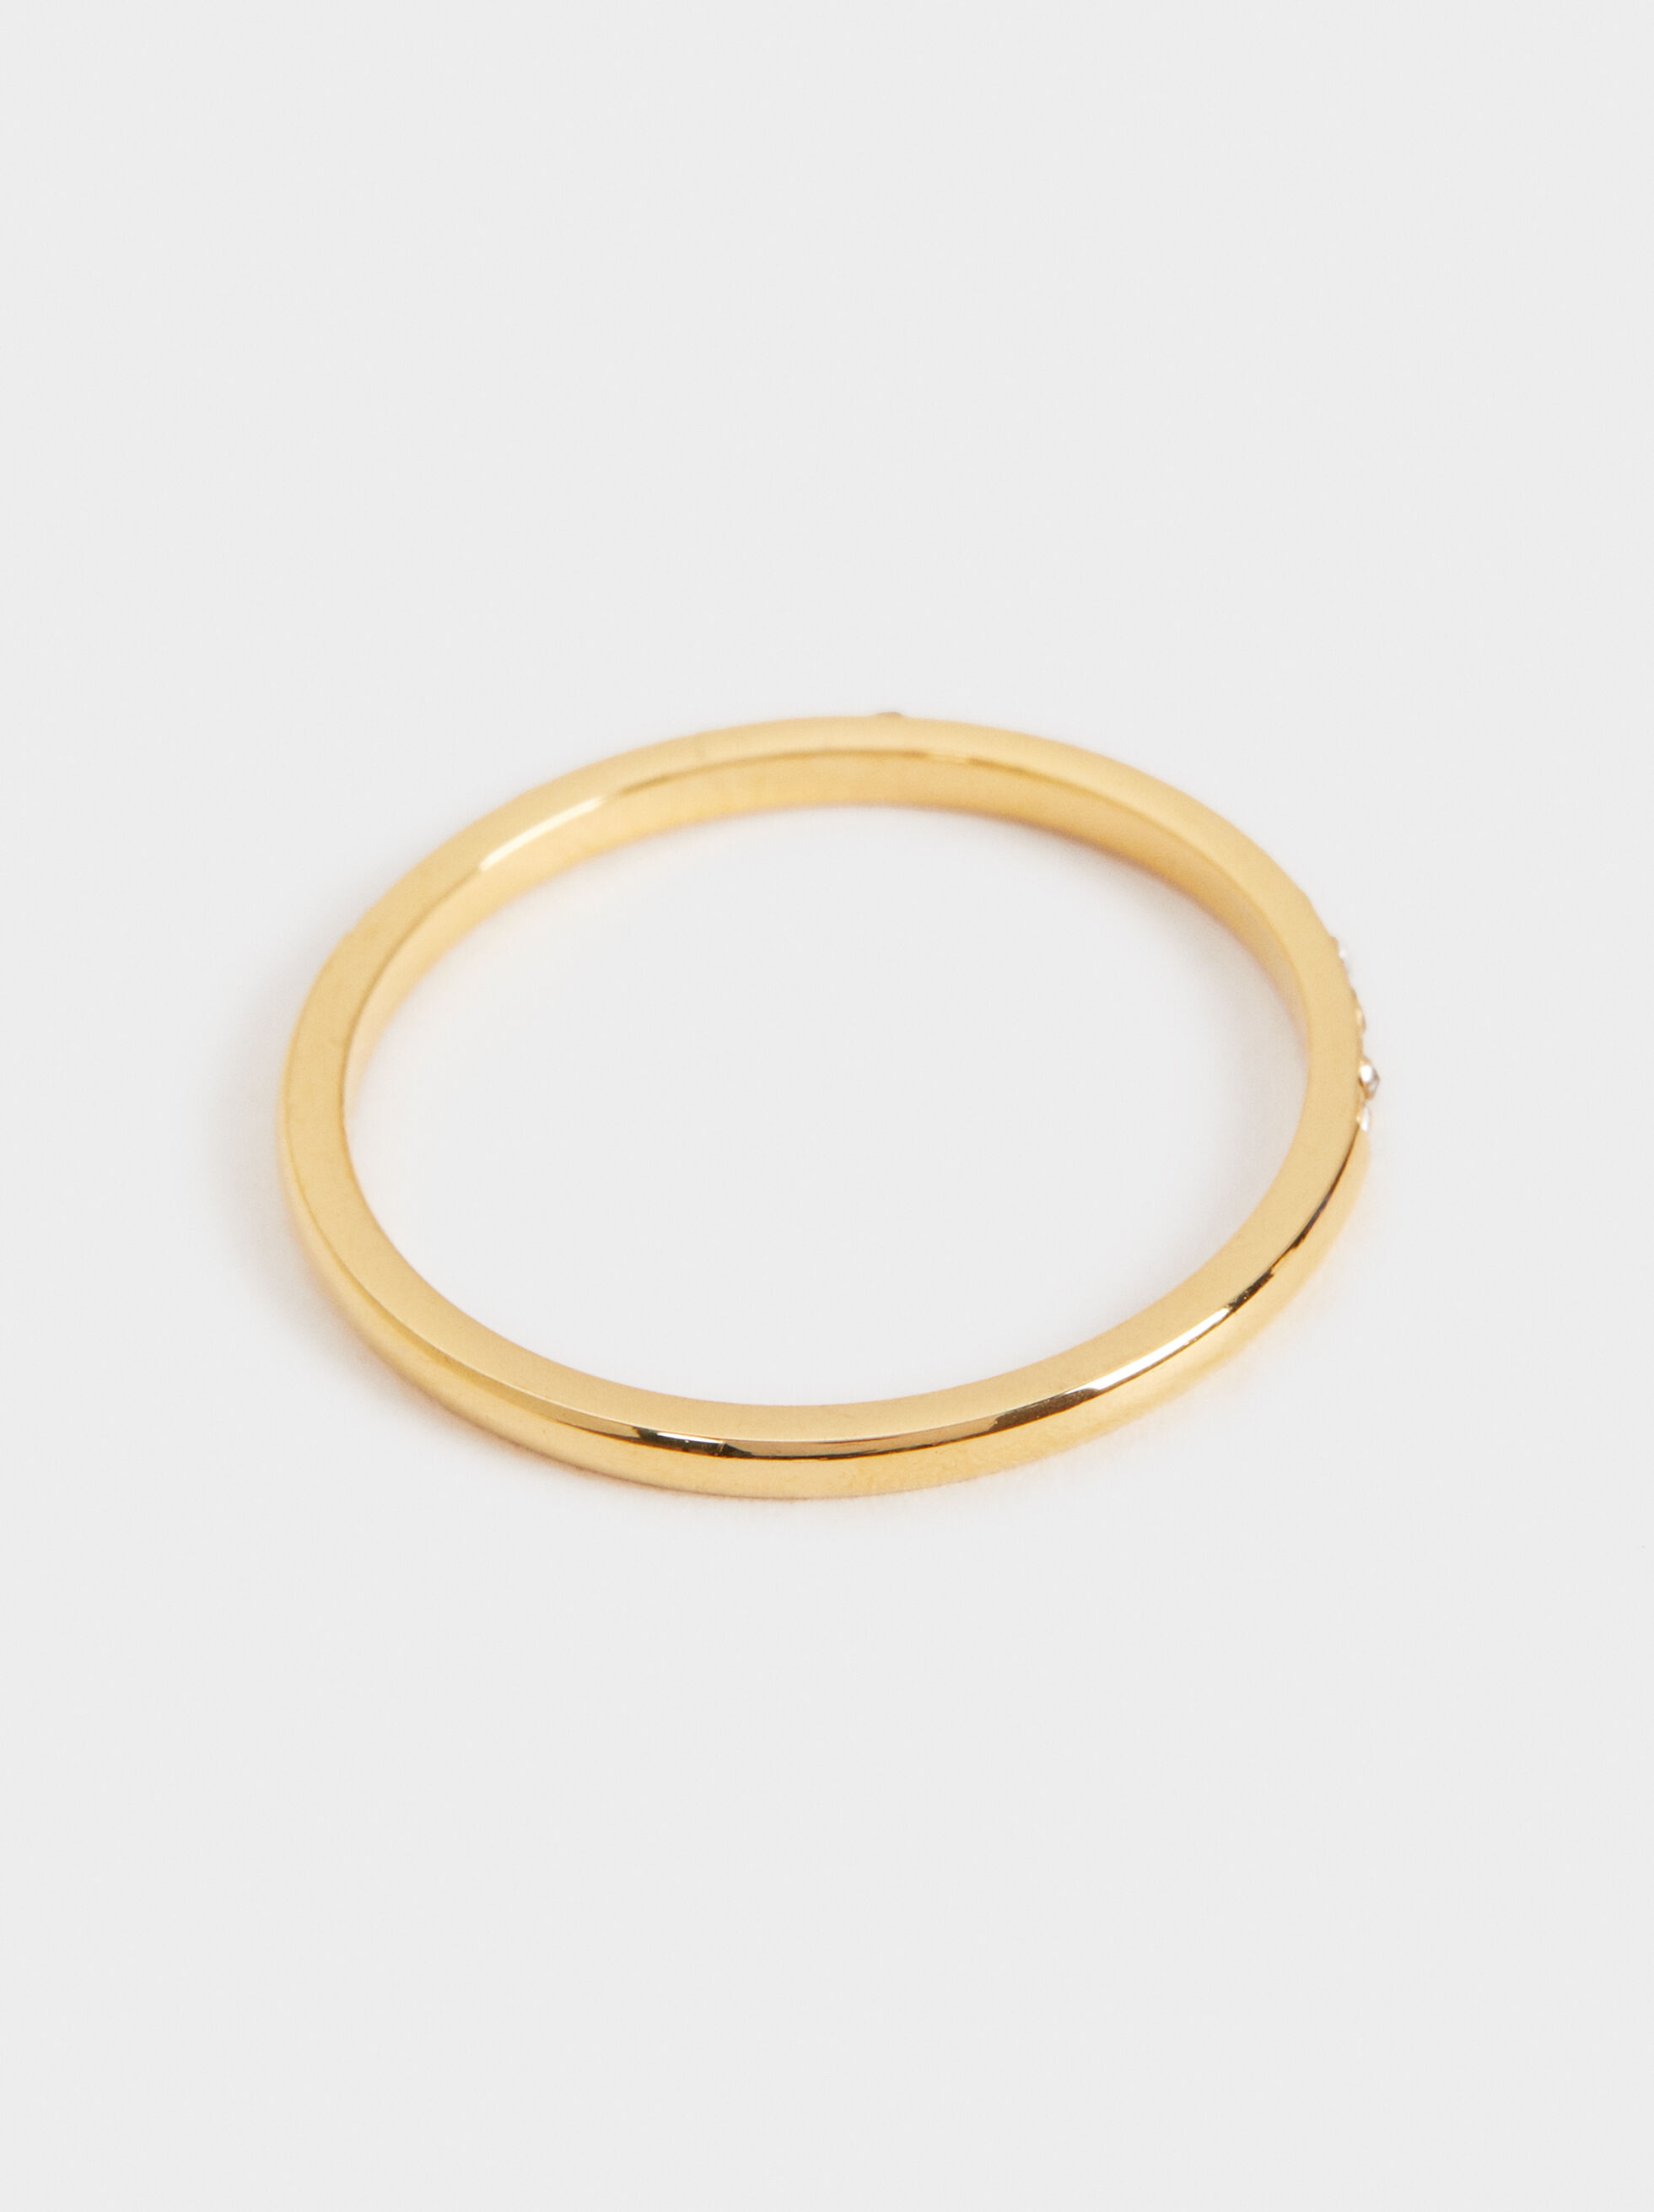 Stainless Steel Ring, Golden, hi-res